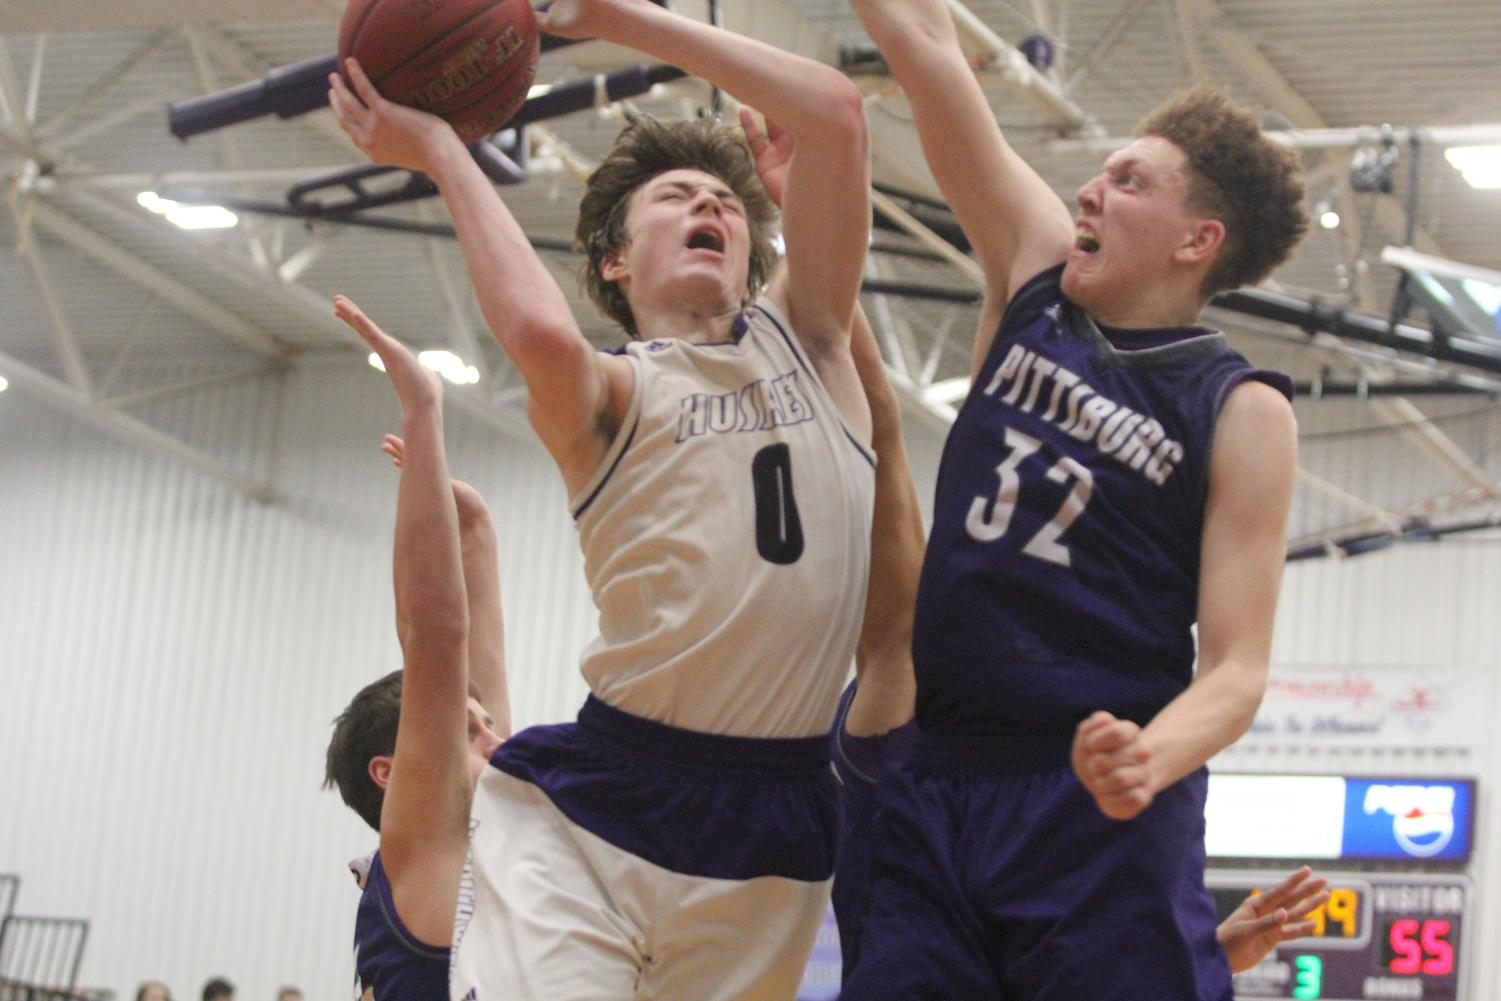 Blue Valley Northwest junior guard Christian Braun (0) goes up for a contested layup during the second half of the Huskies matchup with Pittsburg High at PHS Jan. 20. The Huskies defeated the Purple Dragons, 68-41.